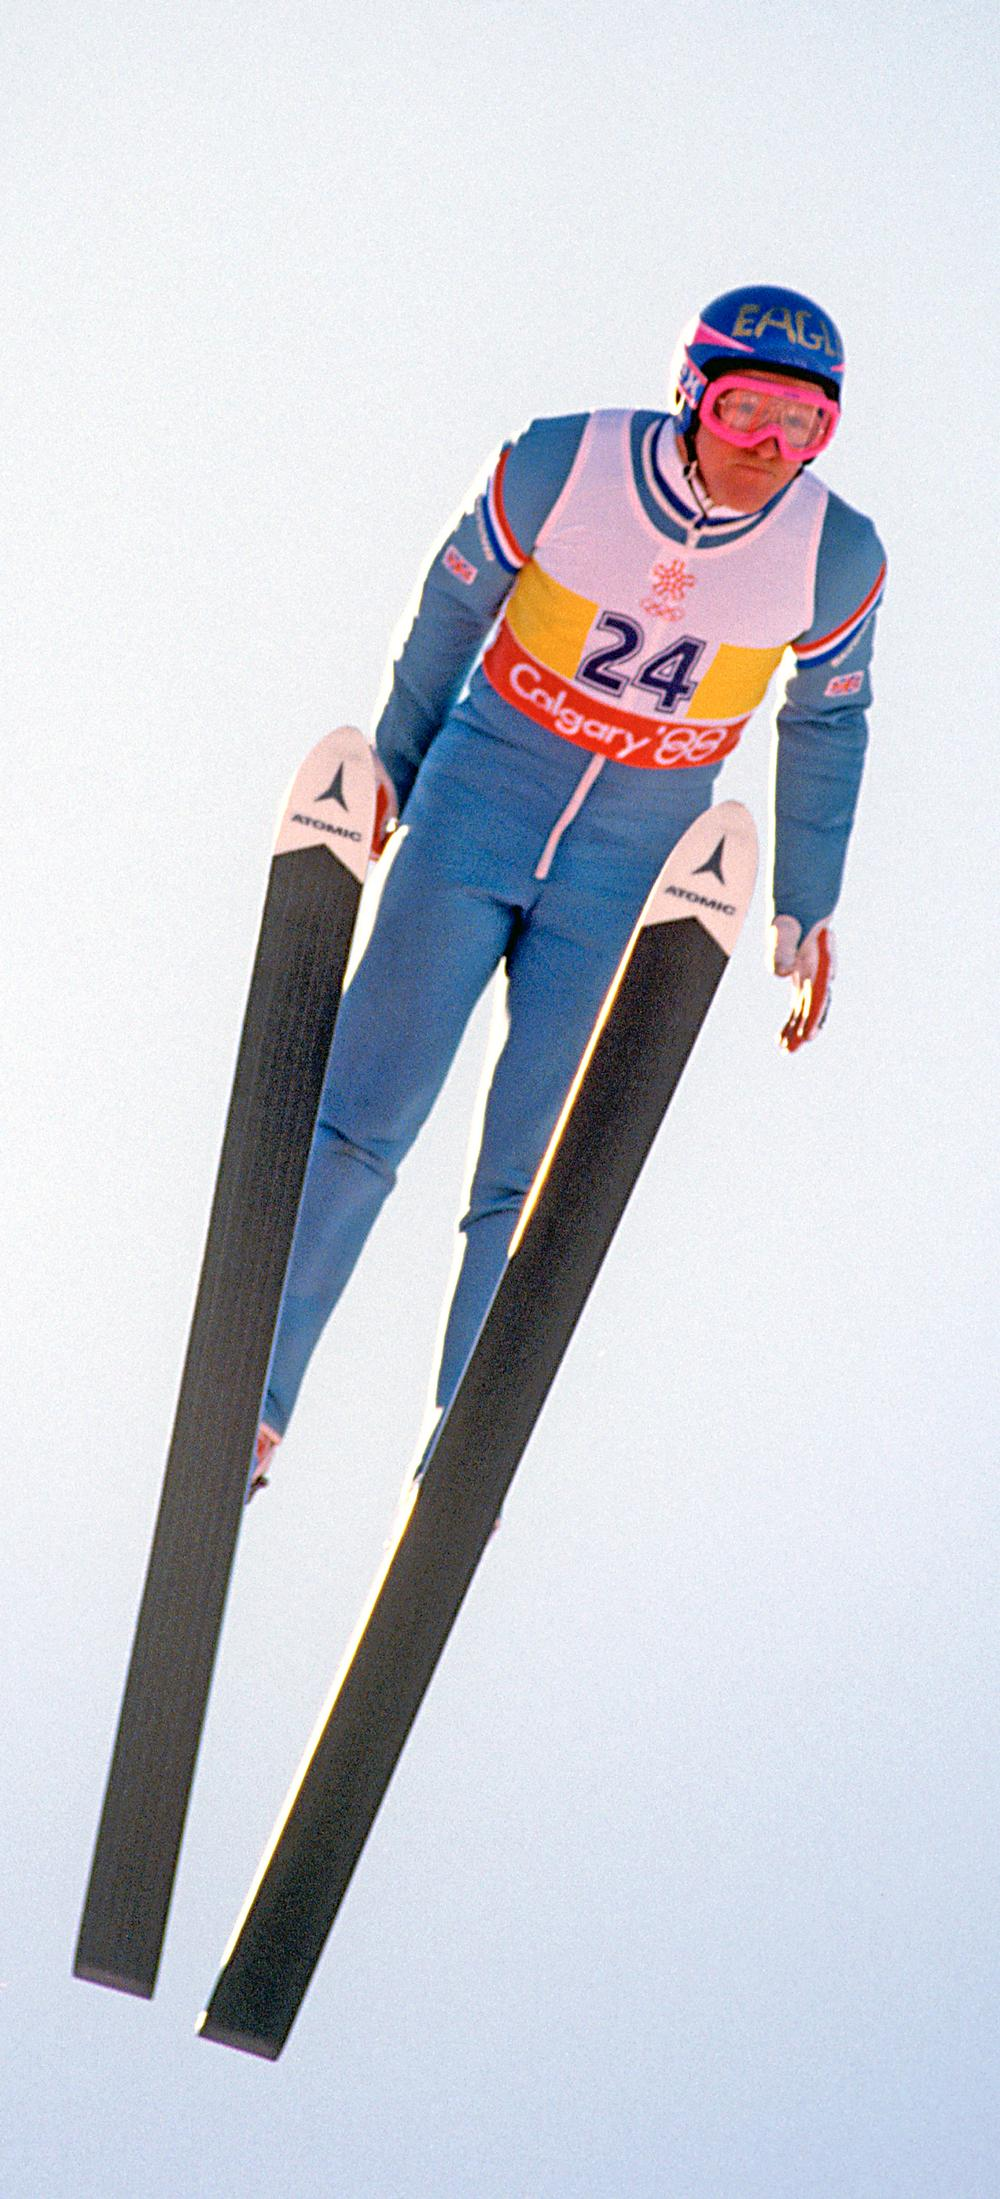 Edwards in action at the 1988 Winter Olympics – his life has inspired a Hollywood film